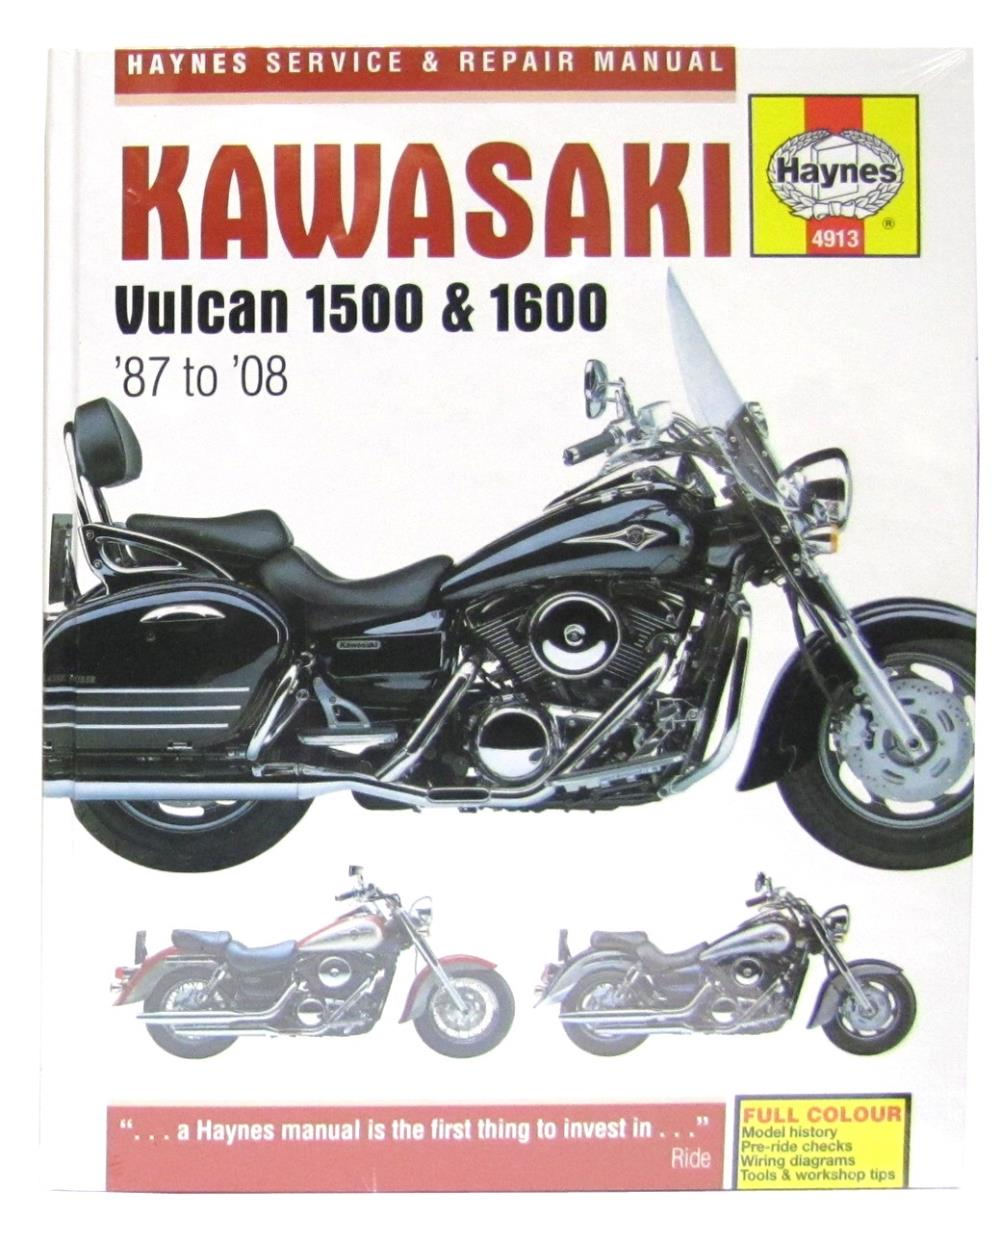 2003 Kawasaki Vn1500 Wiring Diagram Data Diagrams 2001 Vulcan 1500 Free Picture Manual Haynes For Vn P2 Mean Streak Ebay Rh Co Uk Victory V92